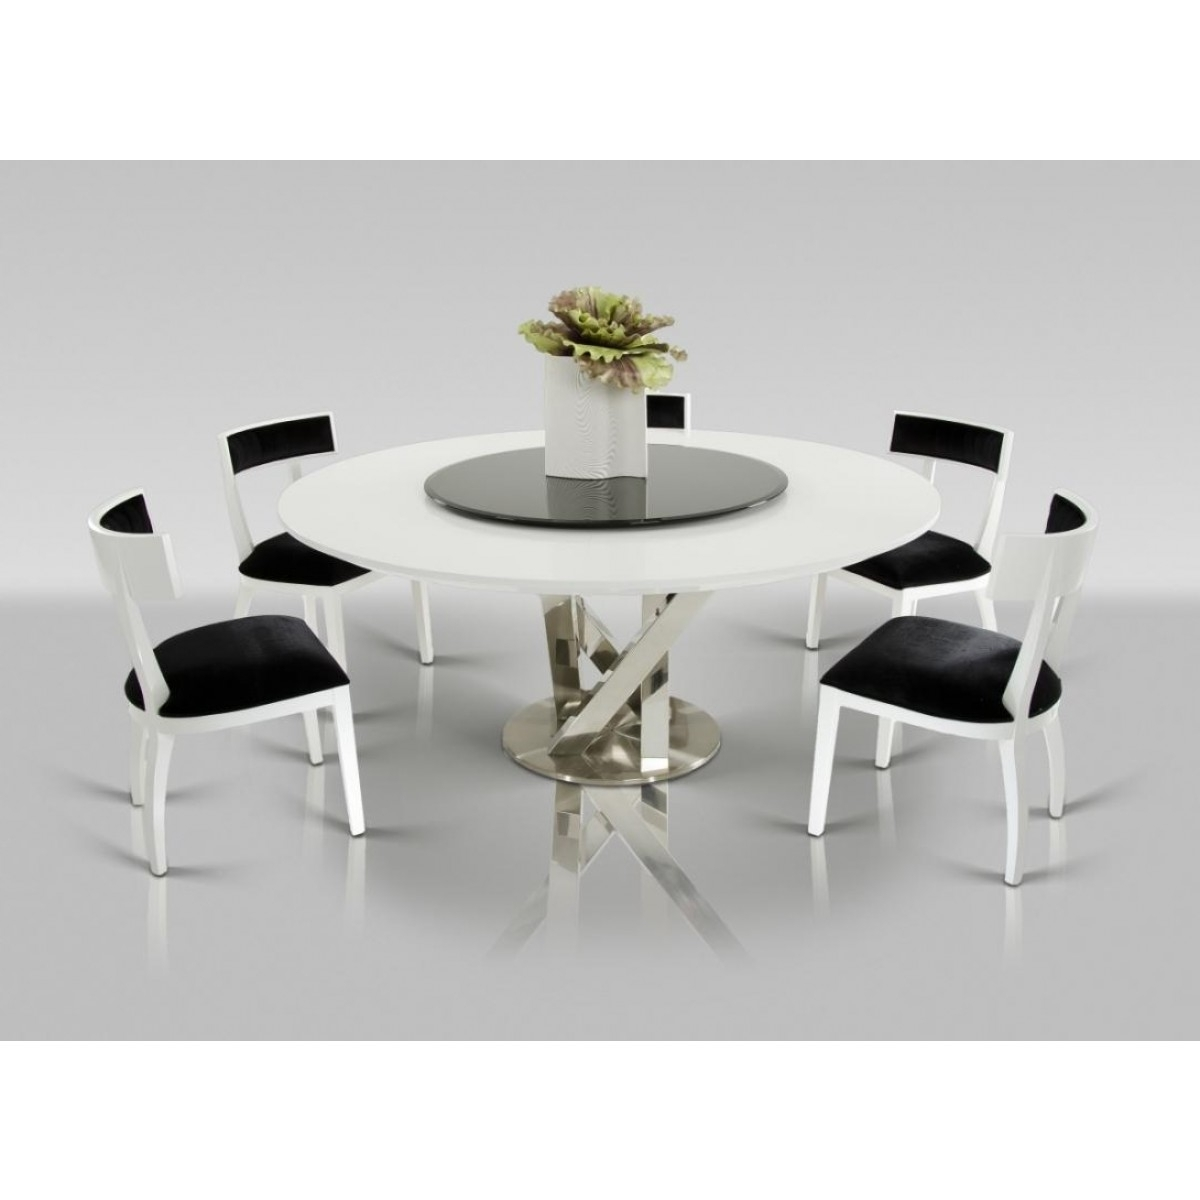 Round White Dining Tables Intended For Recent Contemporary & Luxury Furniture; Living Room, Bedroom,la Furniture (View 16 of 25)